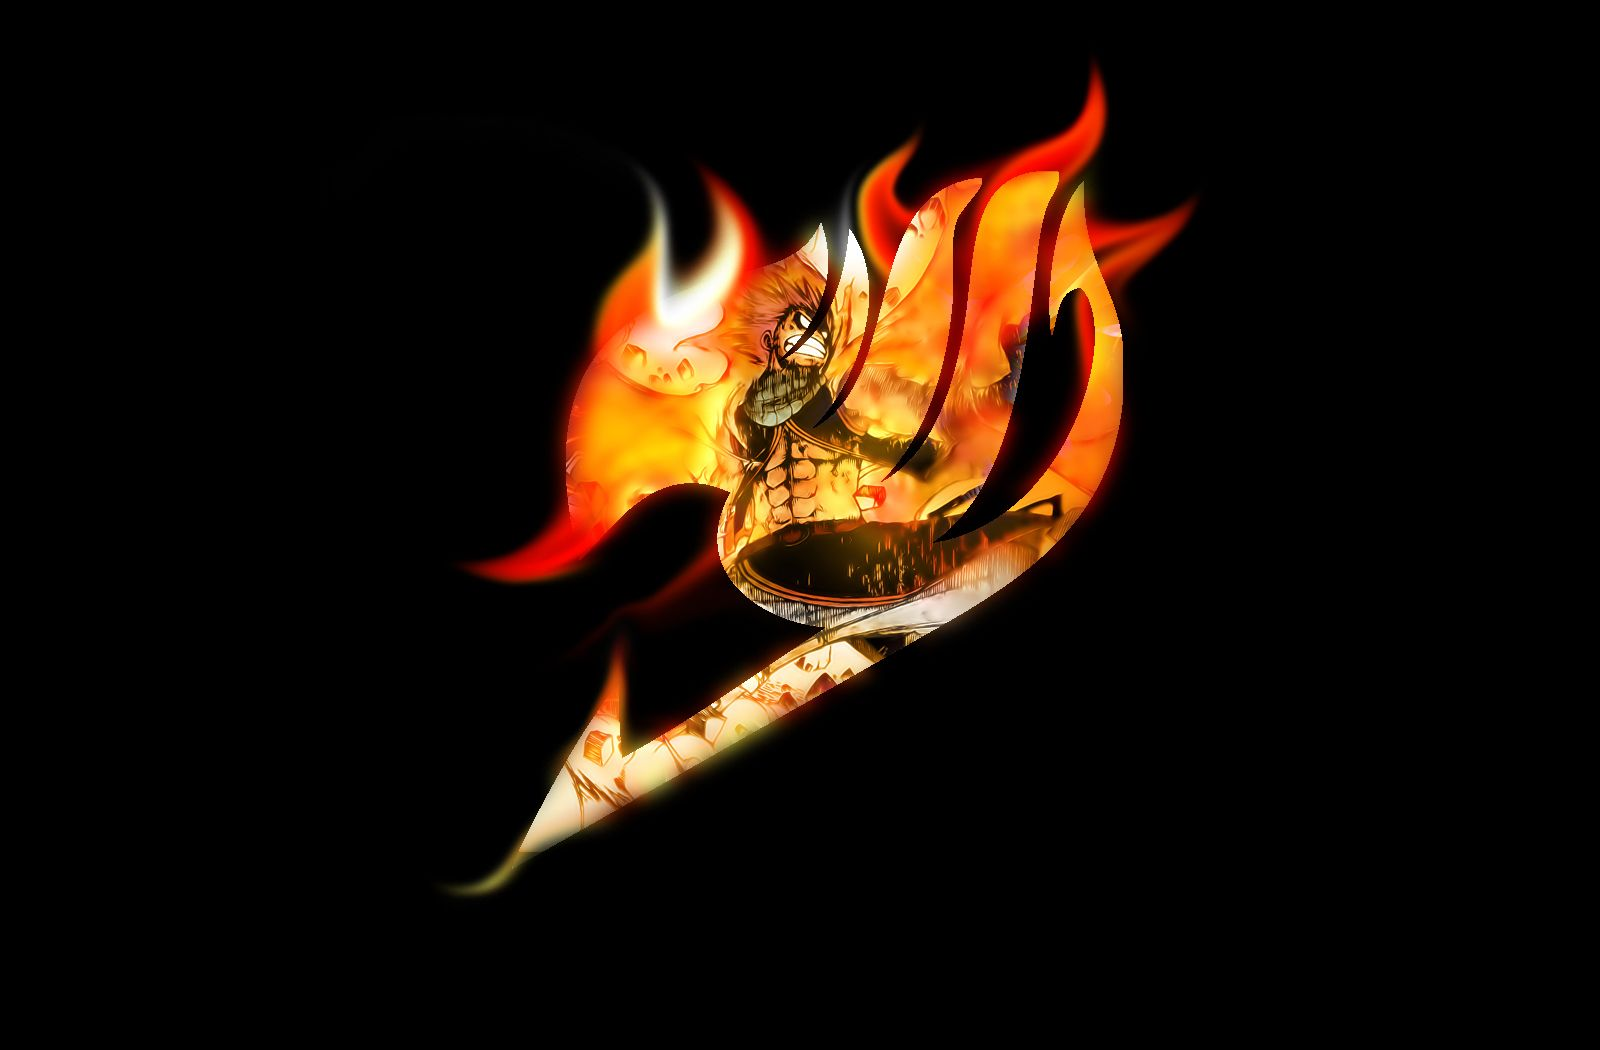 Fairy tail emblem wallpapers group hd wallpapers pinterest fairy tail emblem wallpapers group buycottarizona Gallery